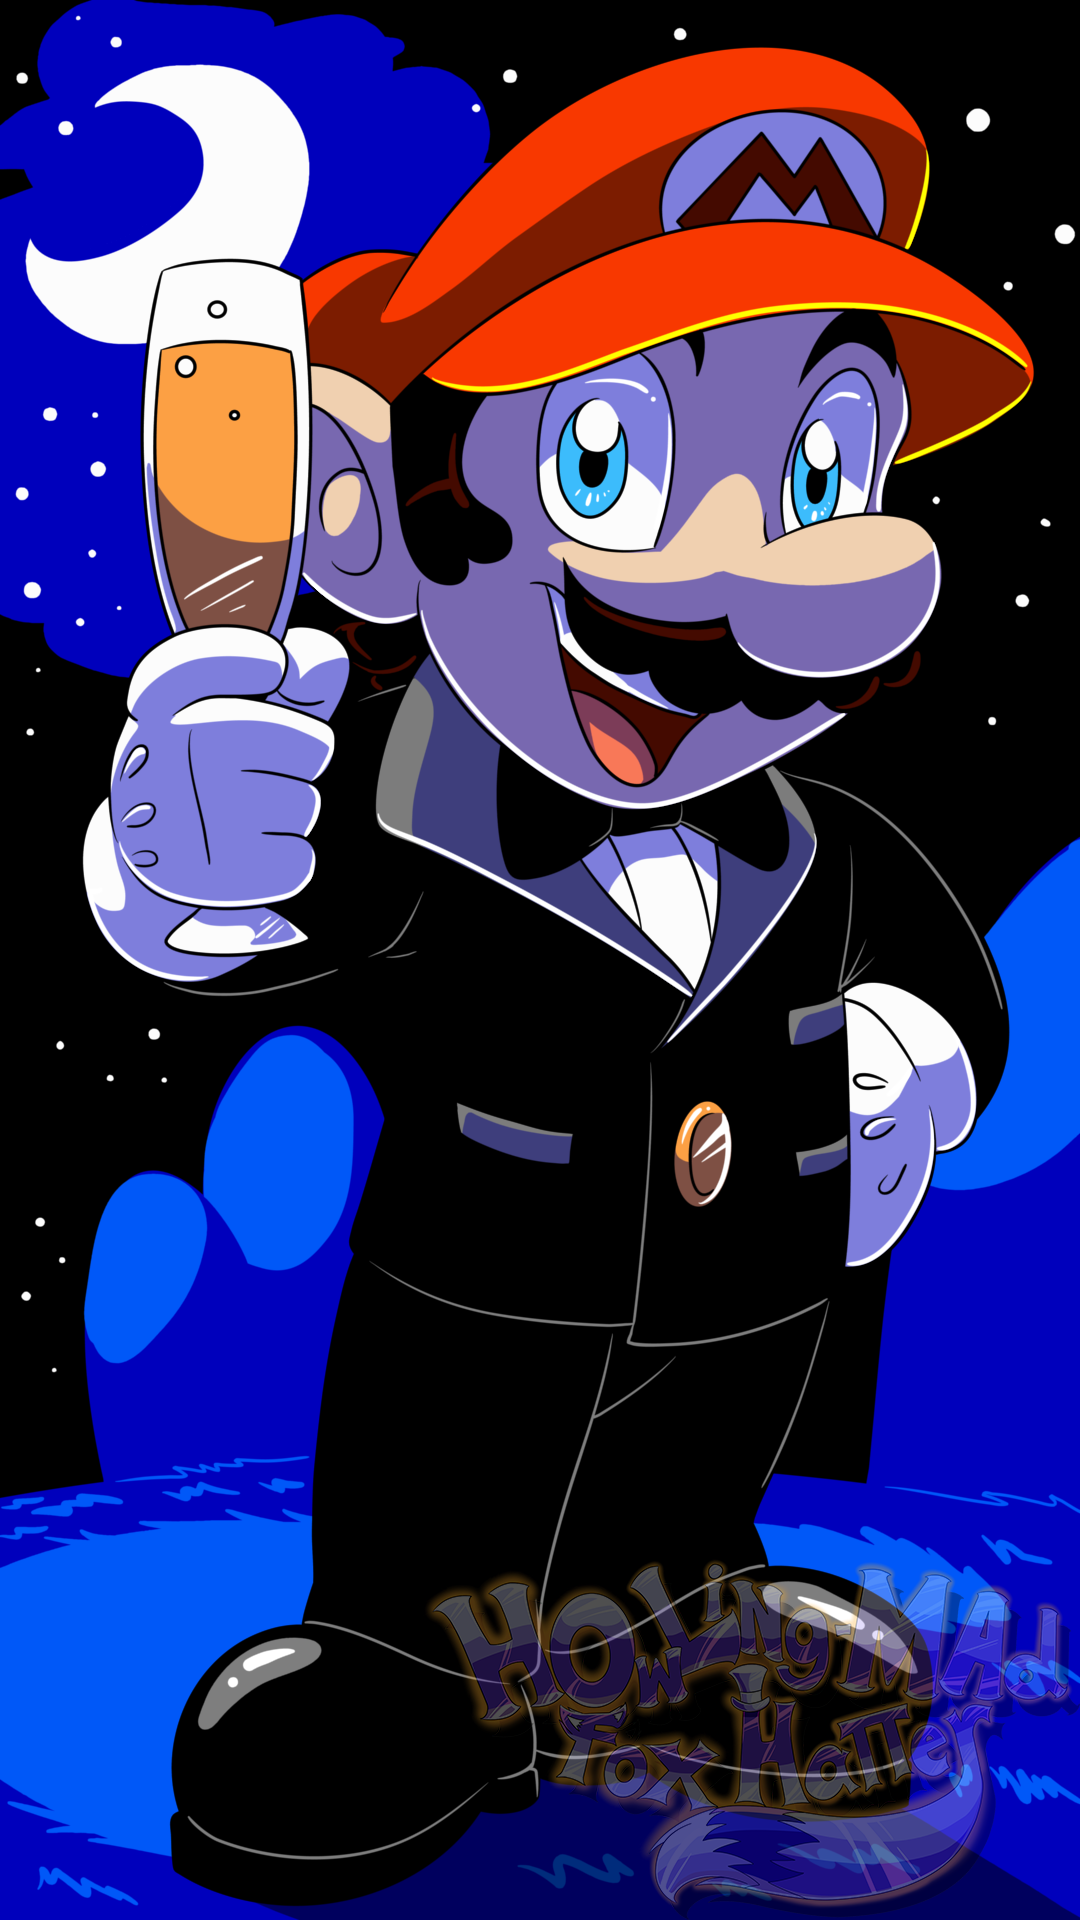 The Snazzy Plumber